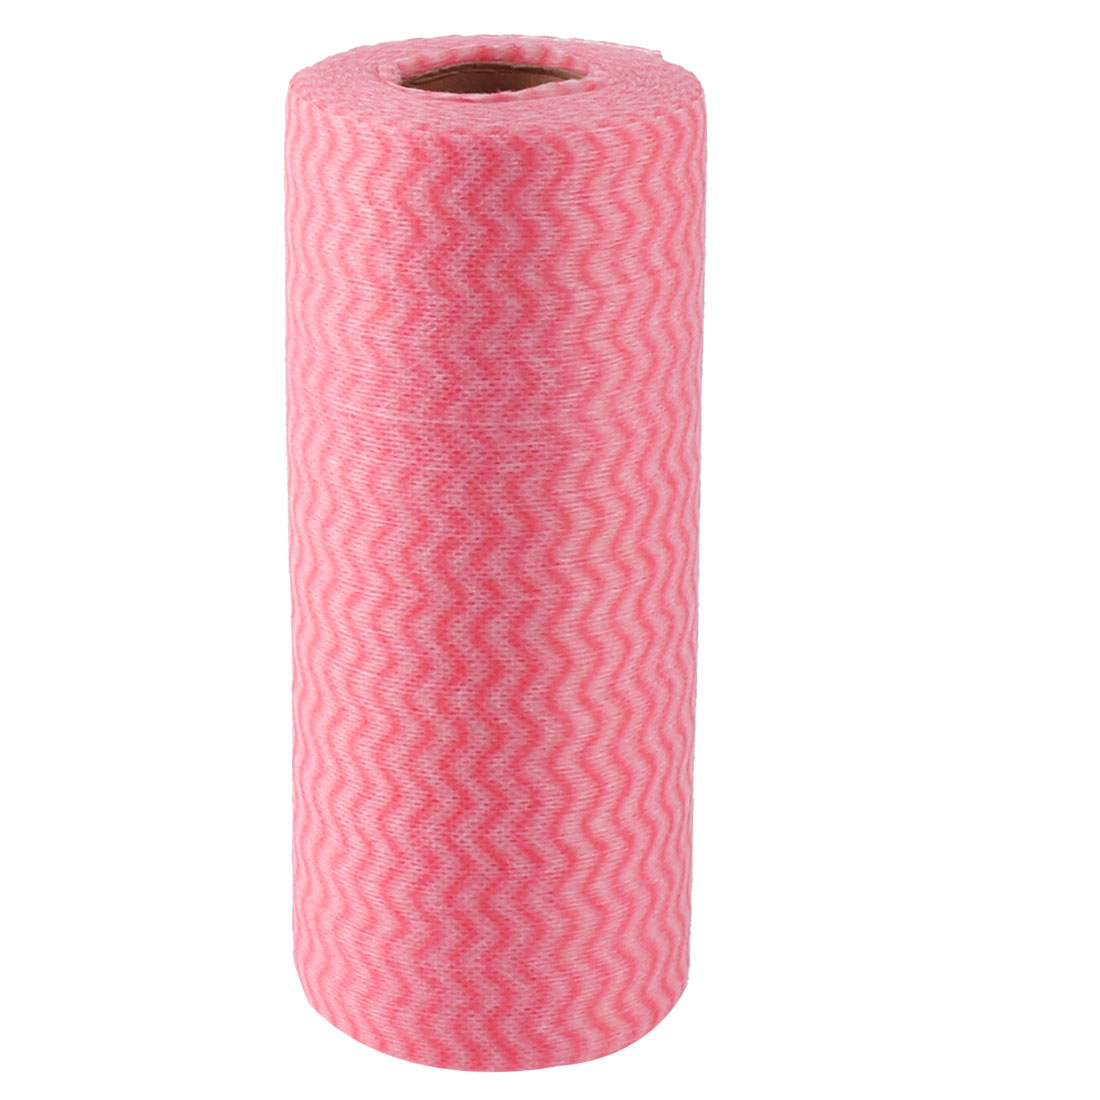 Kitchenware Non-woven Disposable Bowl Pot Dish Scrub Wiping Cleaning Cloth Roll Pink